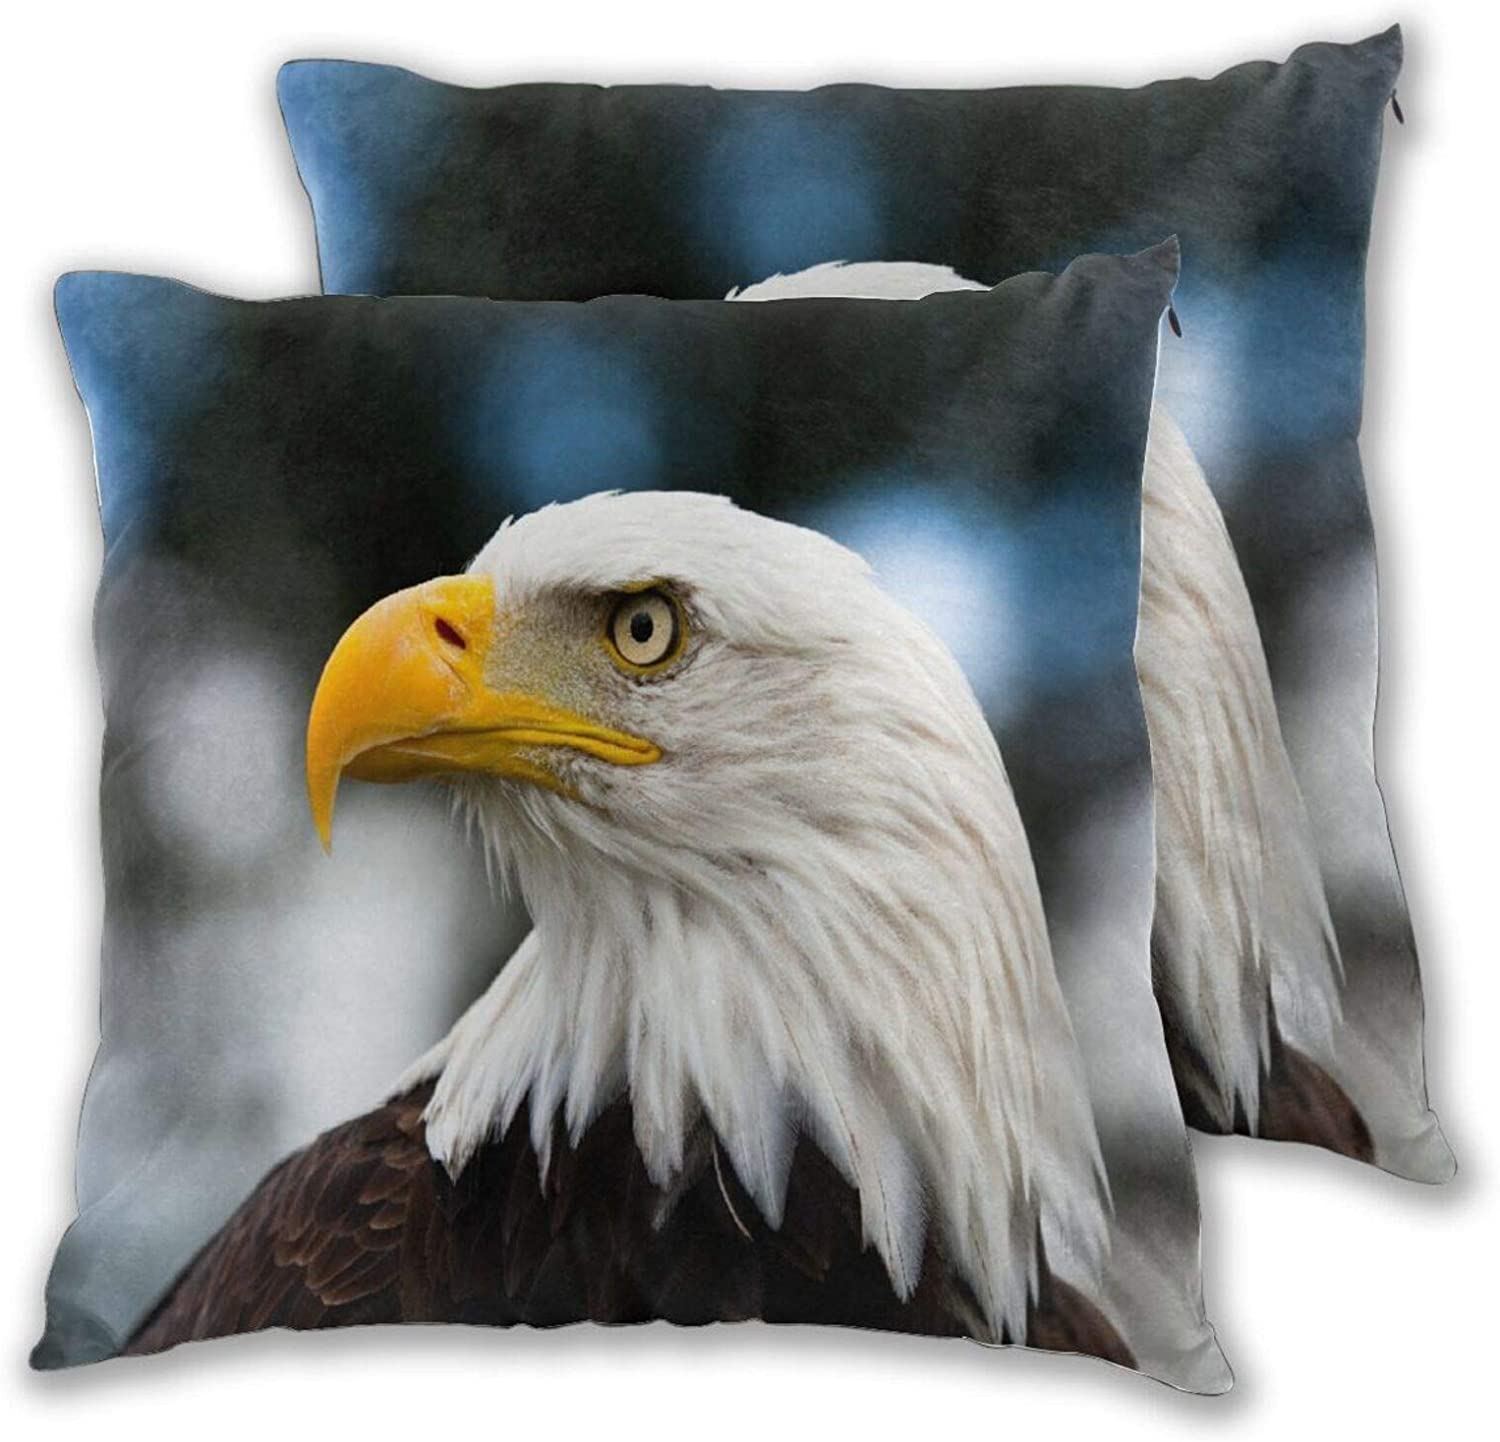 COVASA Pack of 2 Throw Pillow Photo Eagle Genuine Super special price Covers The Head